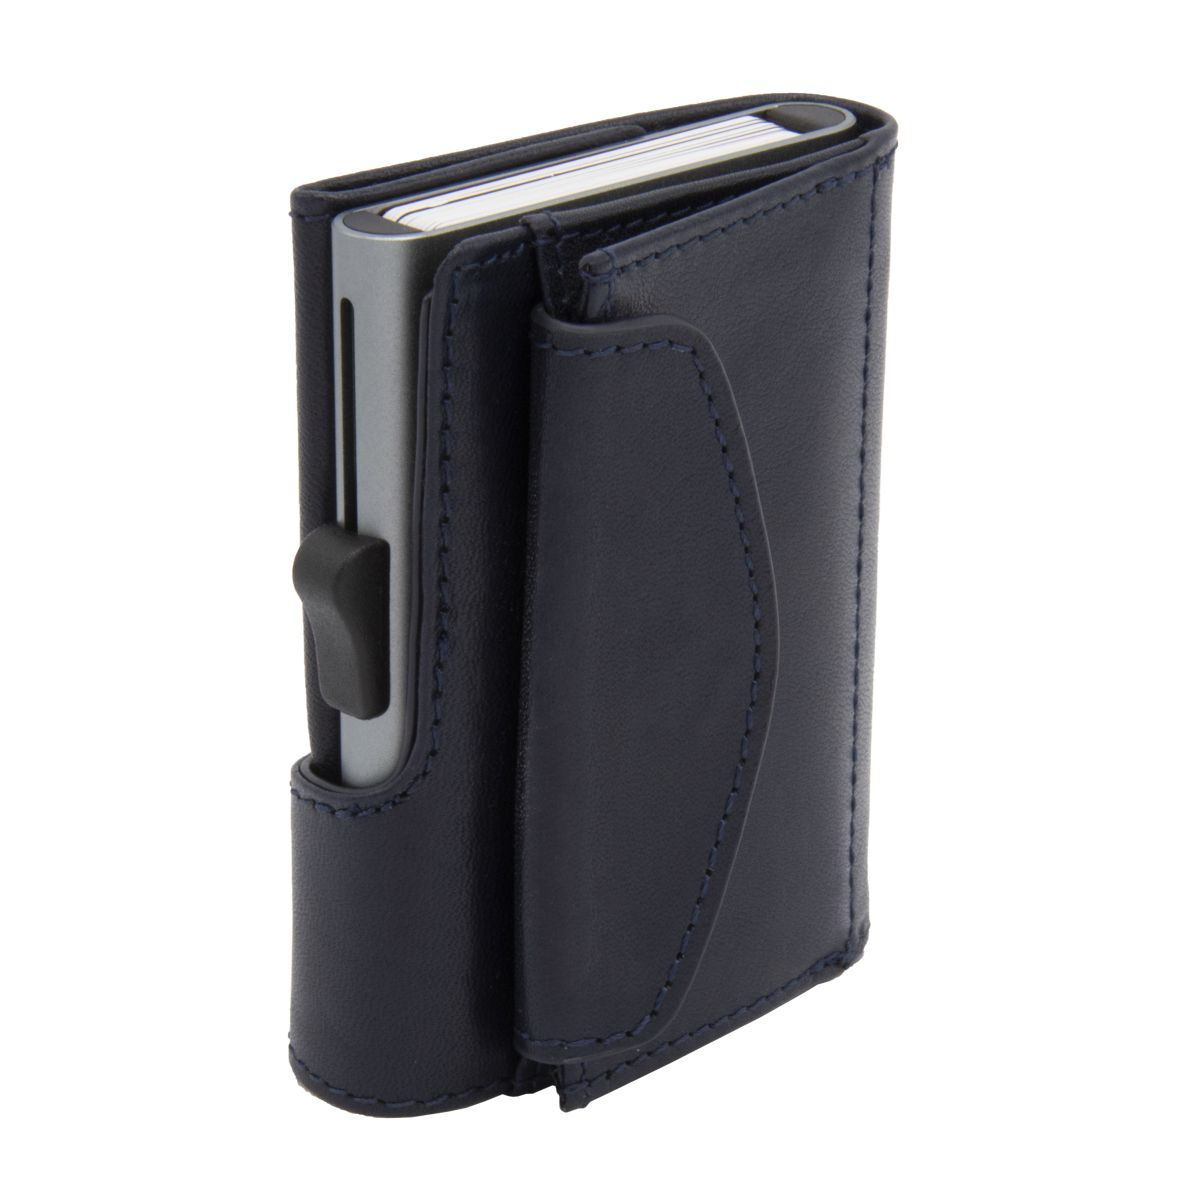 XL Aluminum Wallet with Genuine Leather and Coins Pocket - Blue Montana